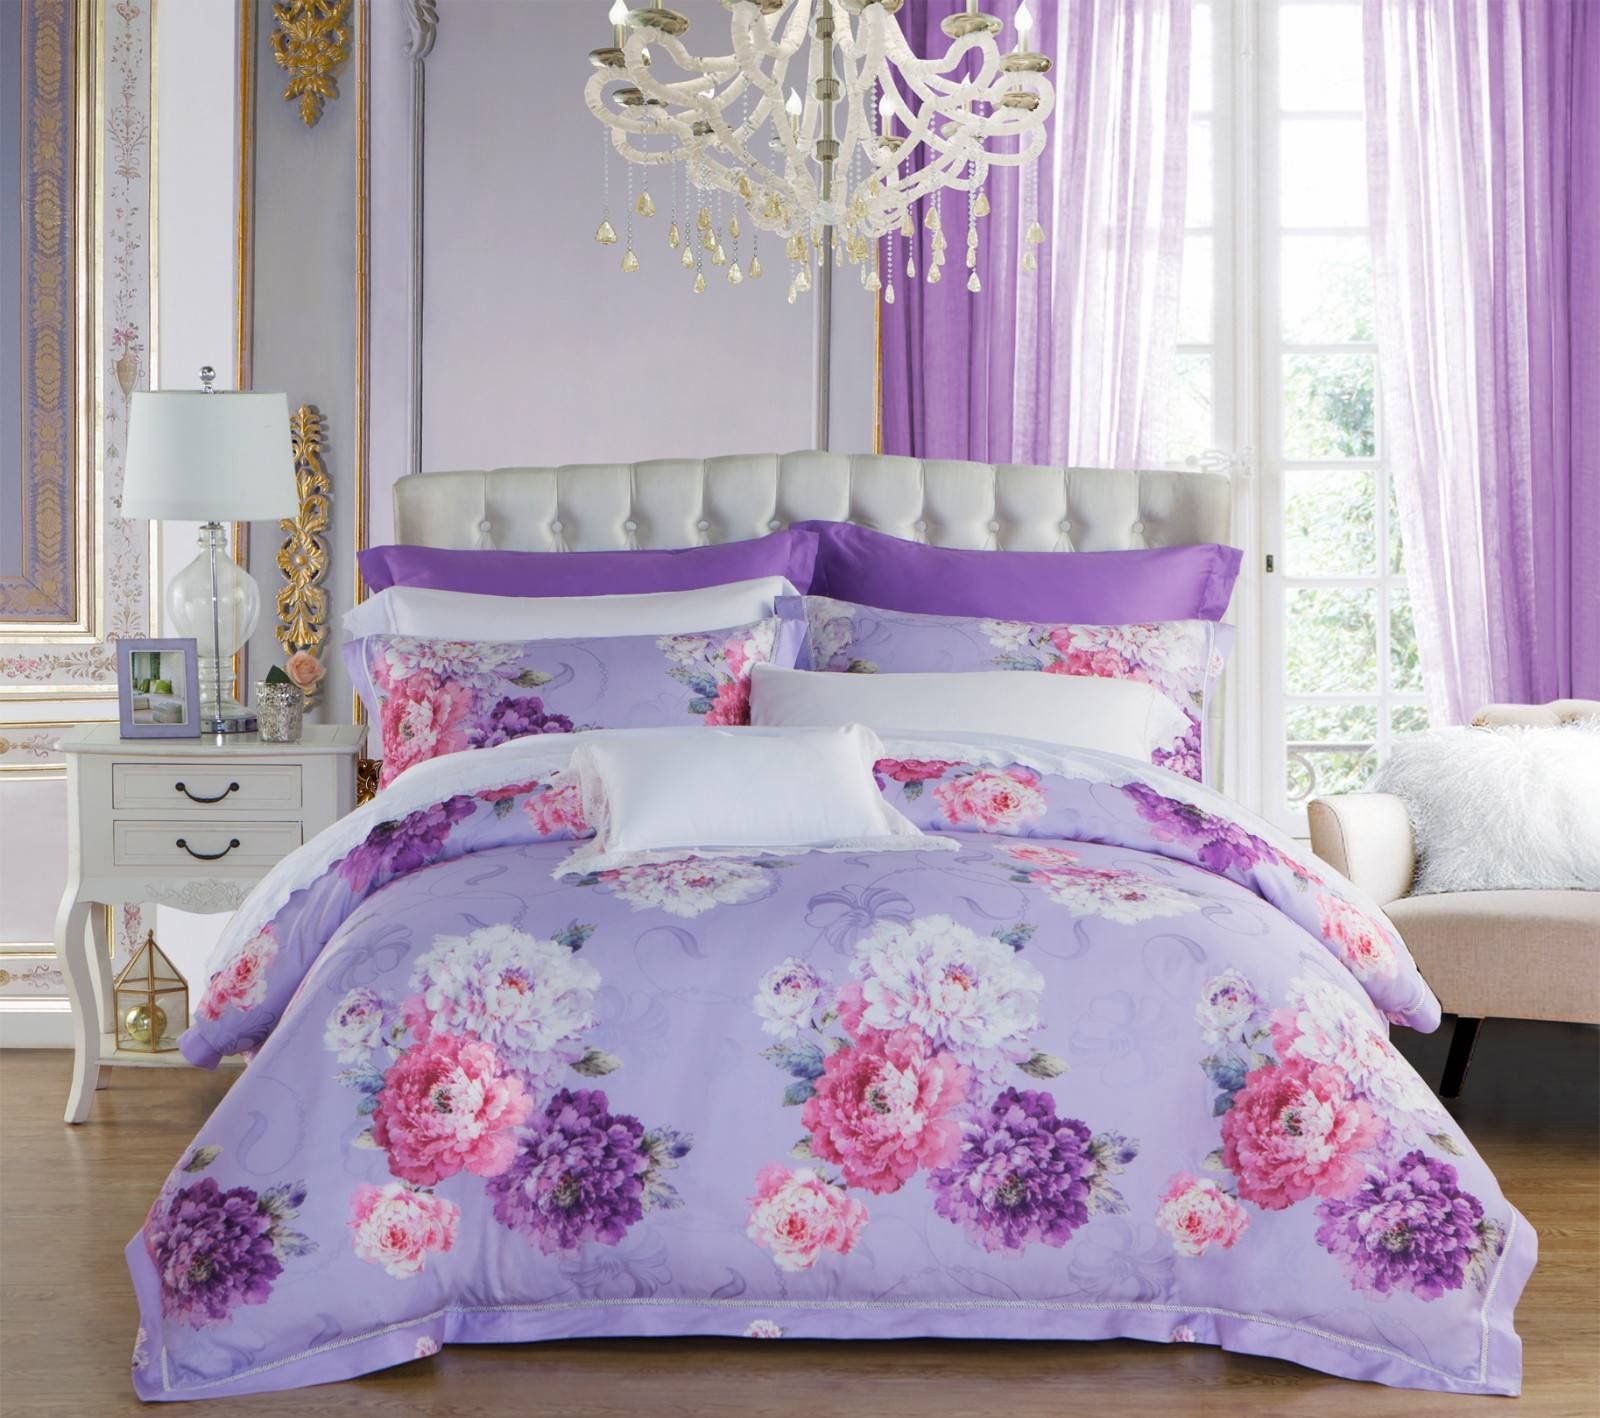 Peony Patterns Bedding Set  Lyocell and Viscose 6833